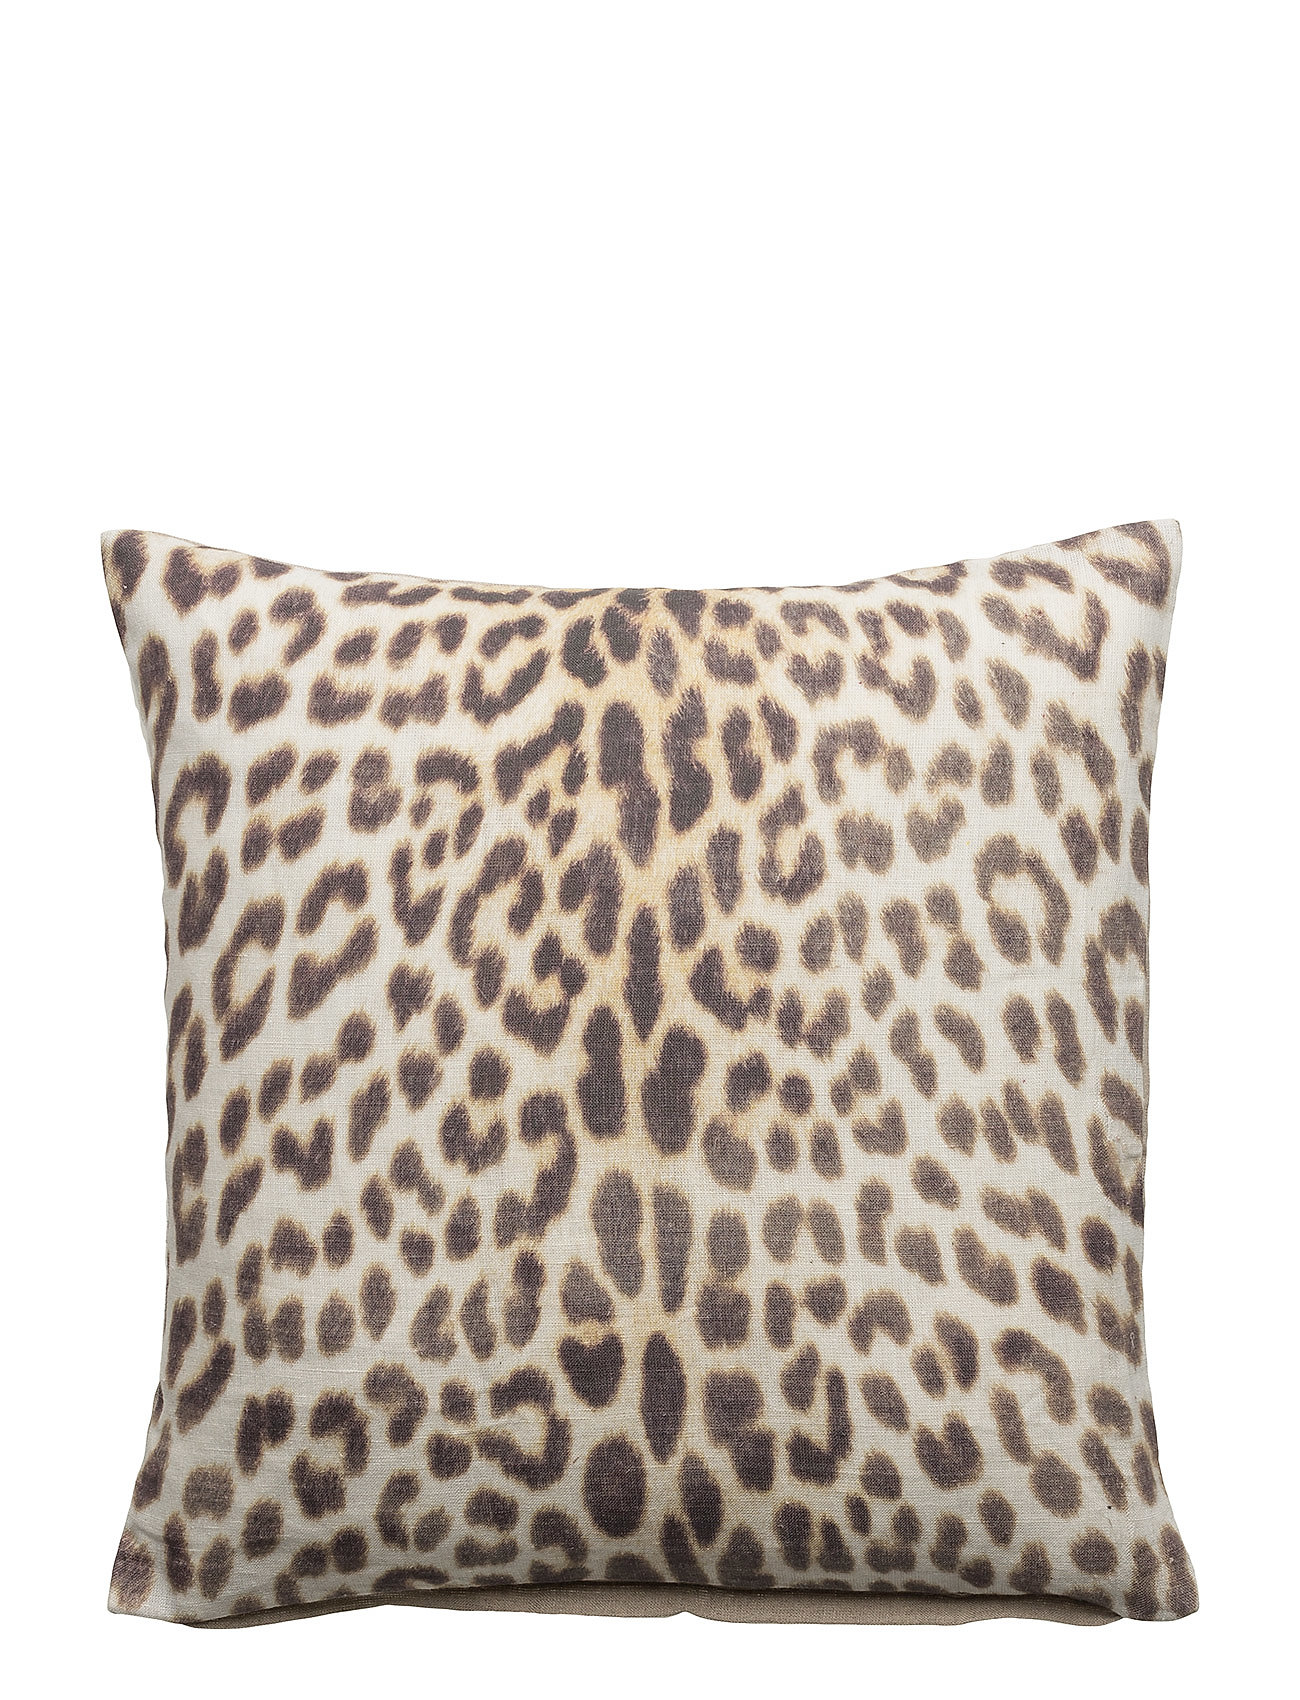 DAY Home Panter cushion cover - PANTER